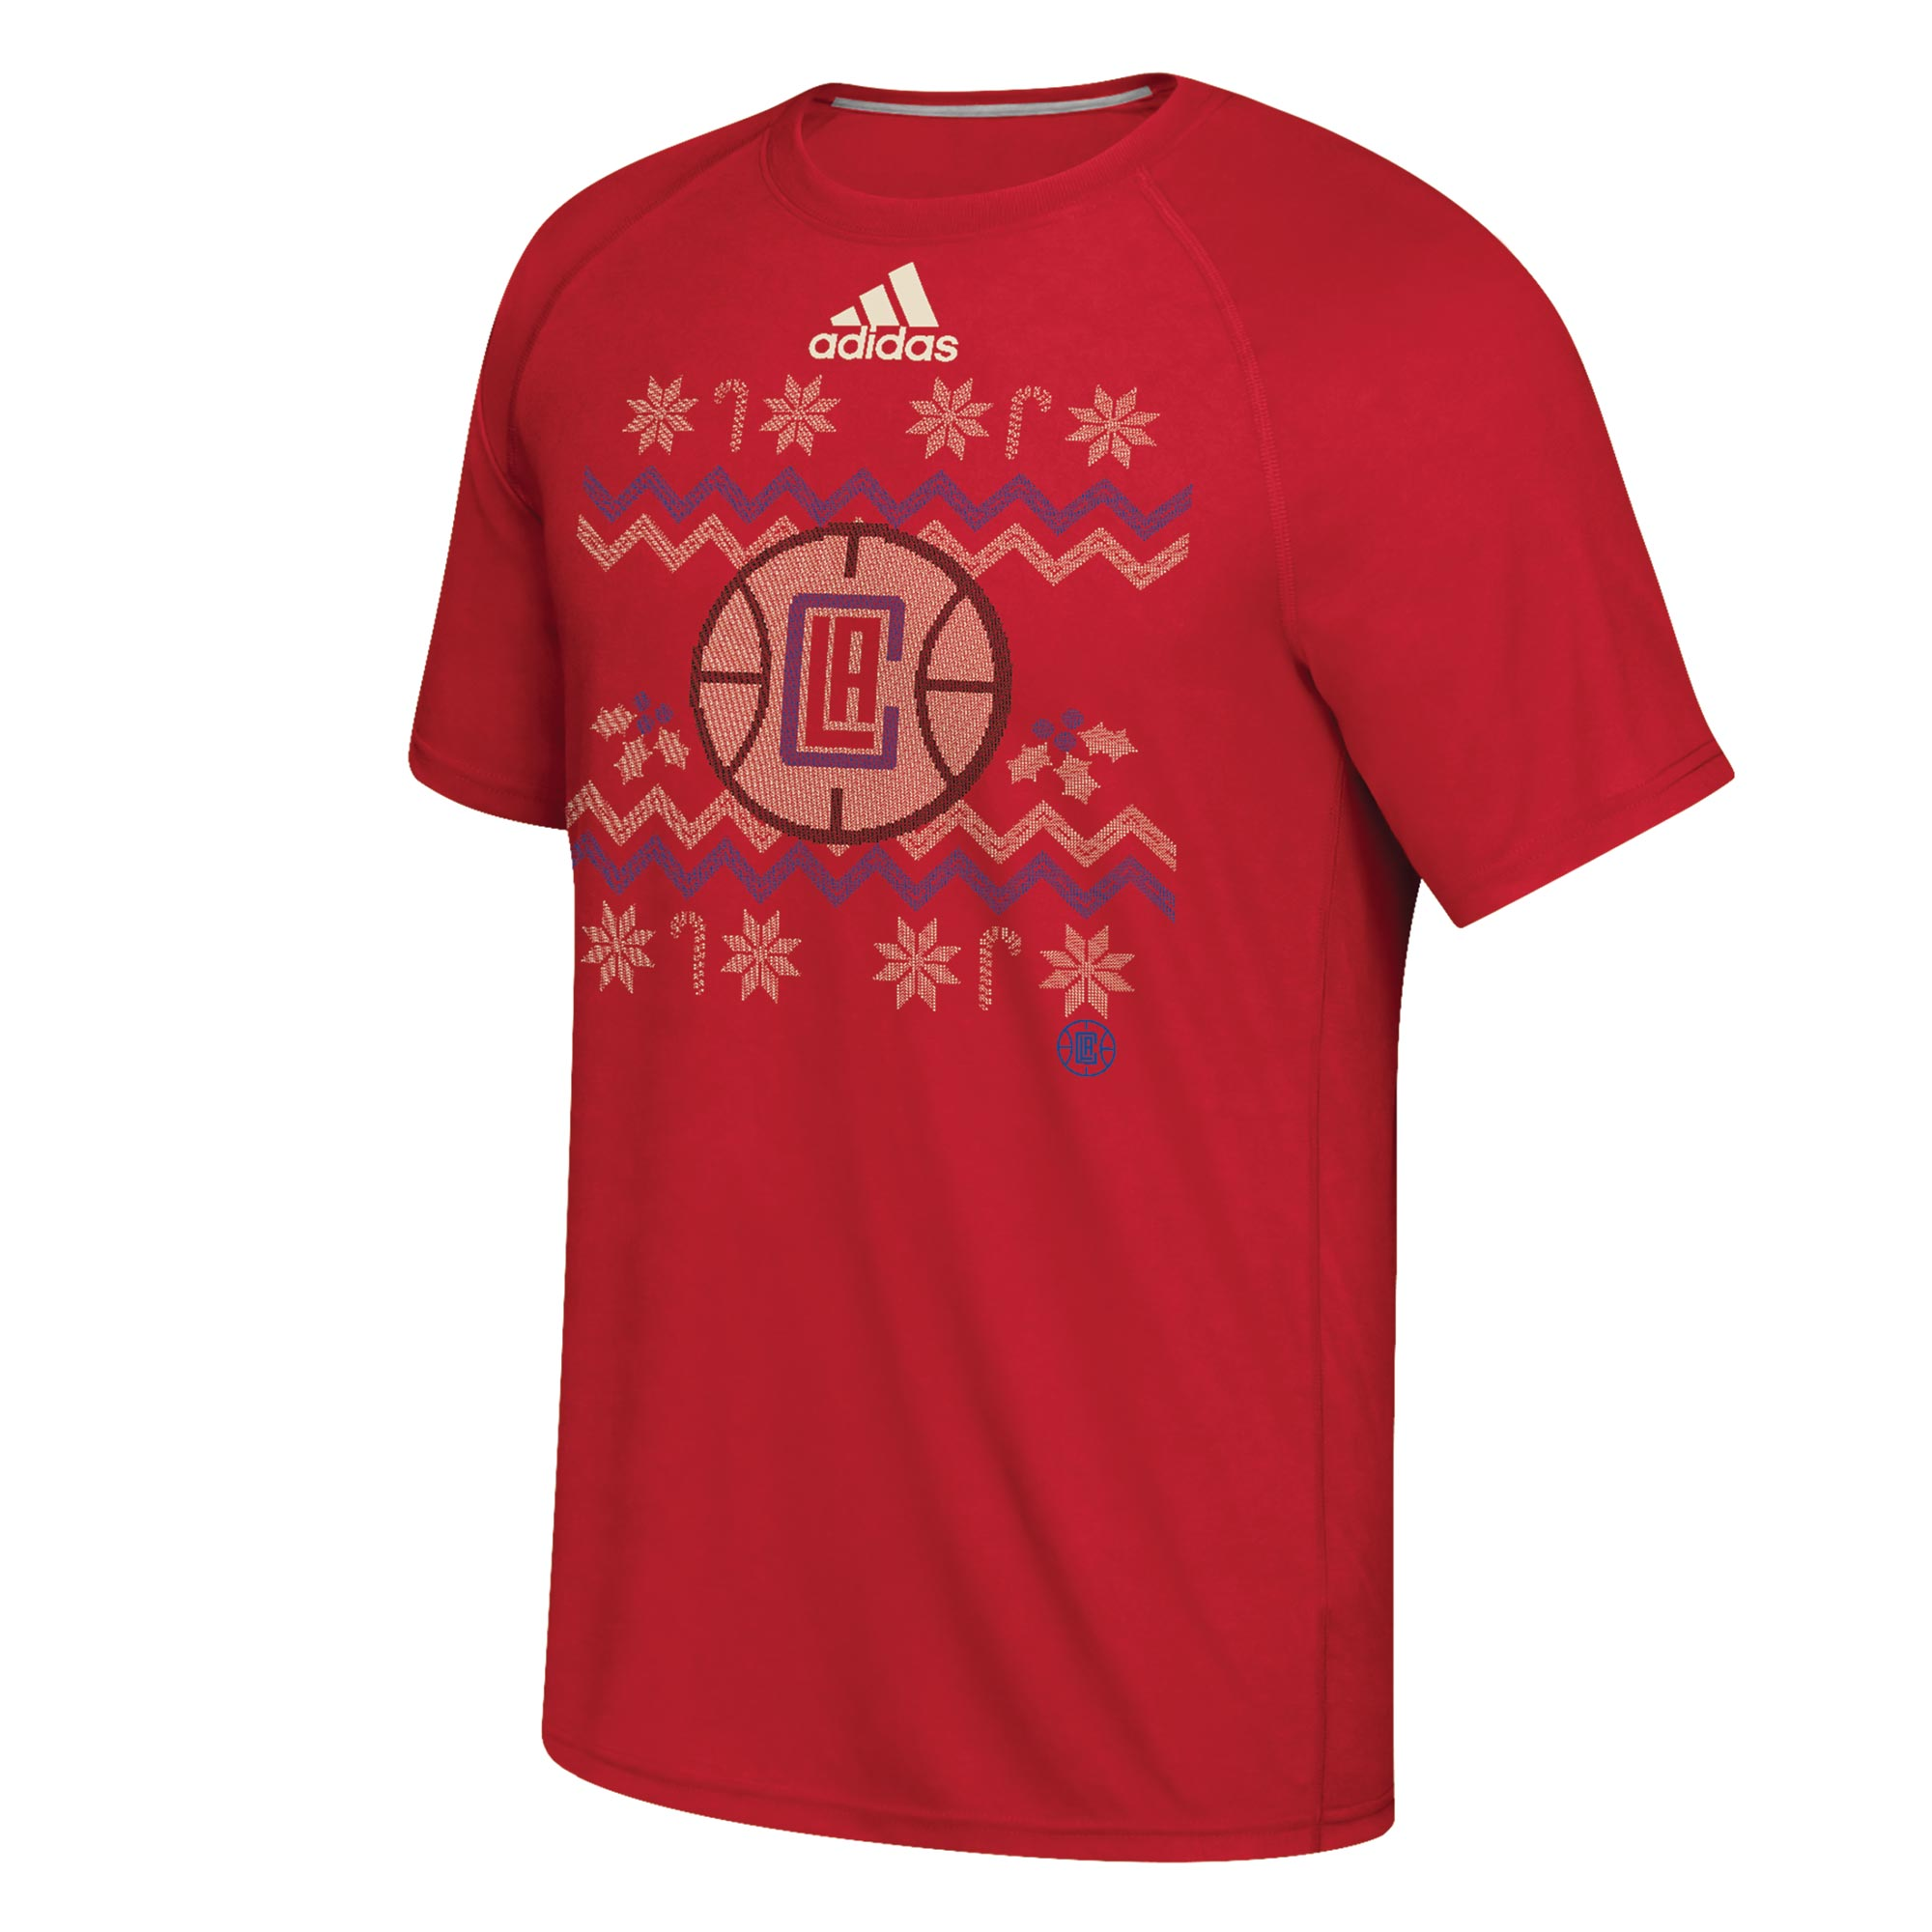 LA Clippers Christmas Day Ugly Sweater On-Court T-Shirt 2016